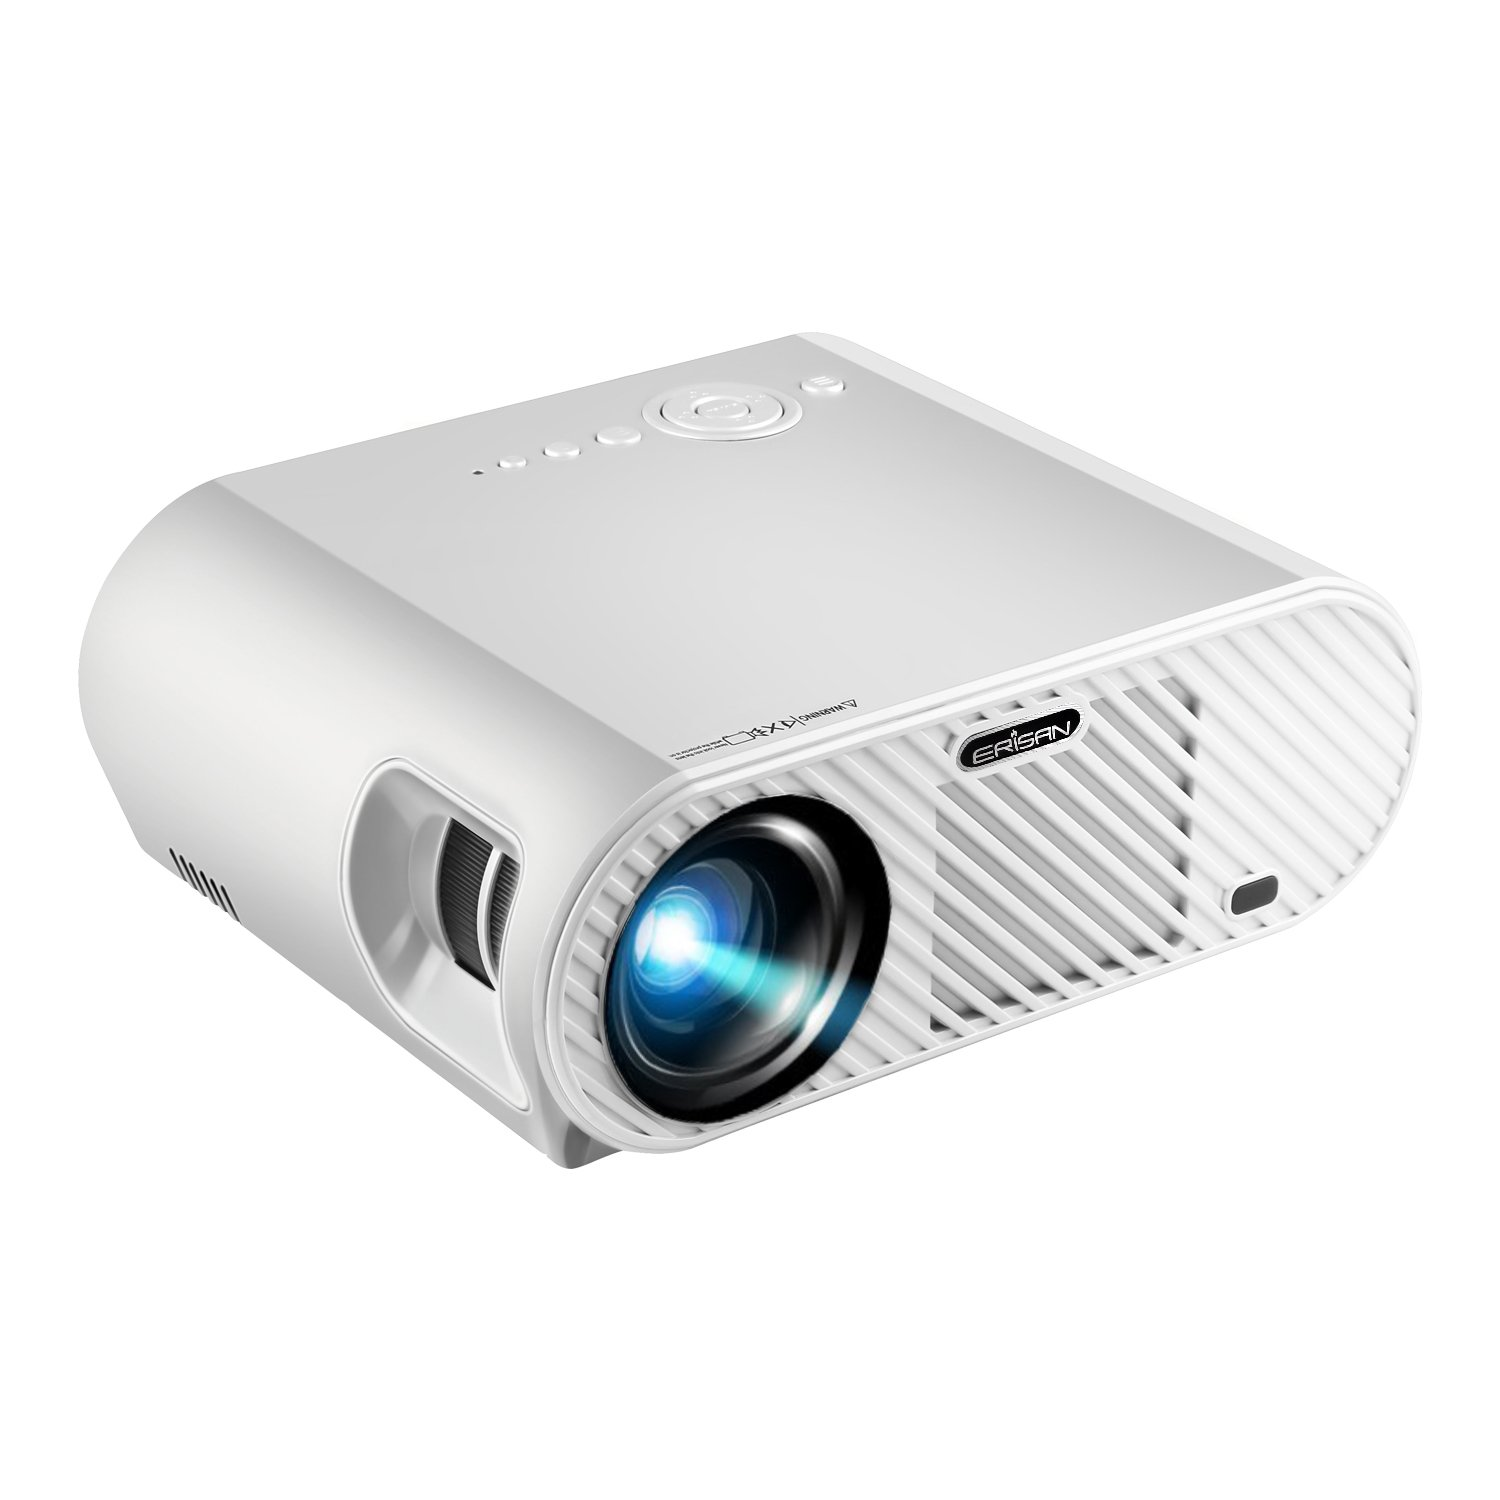 ERISAN 720P Video Projector (Warranty Included), 3500 Luminous Efficiency, Native Resolution 1280x800, with HDMI Support 1080P VGA USB AV TV Laptop for Entertainment (White) ¡